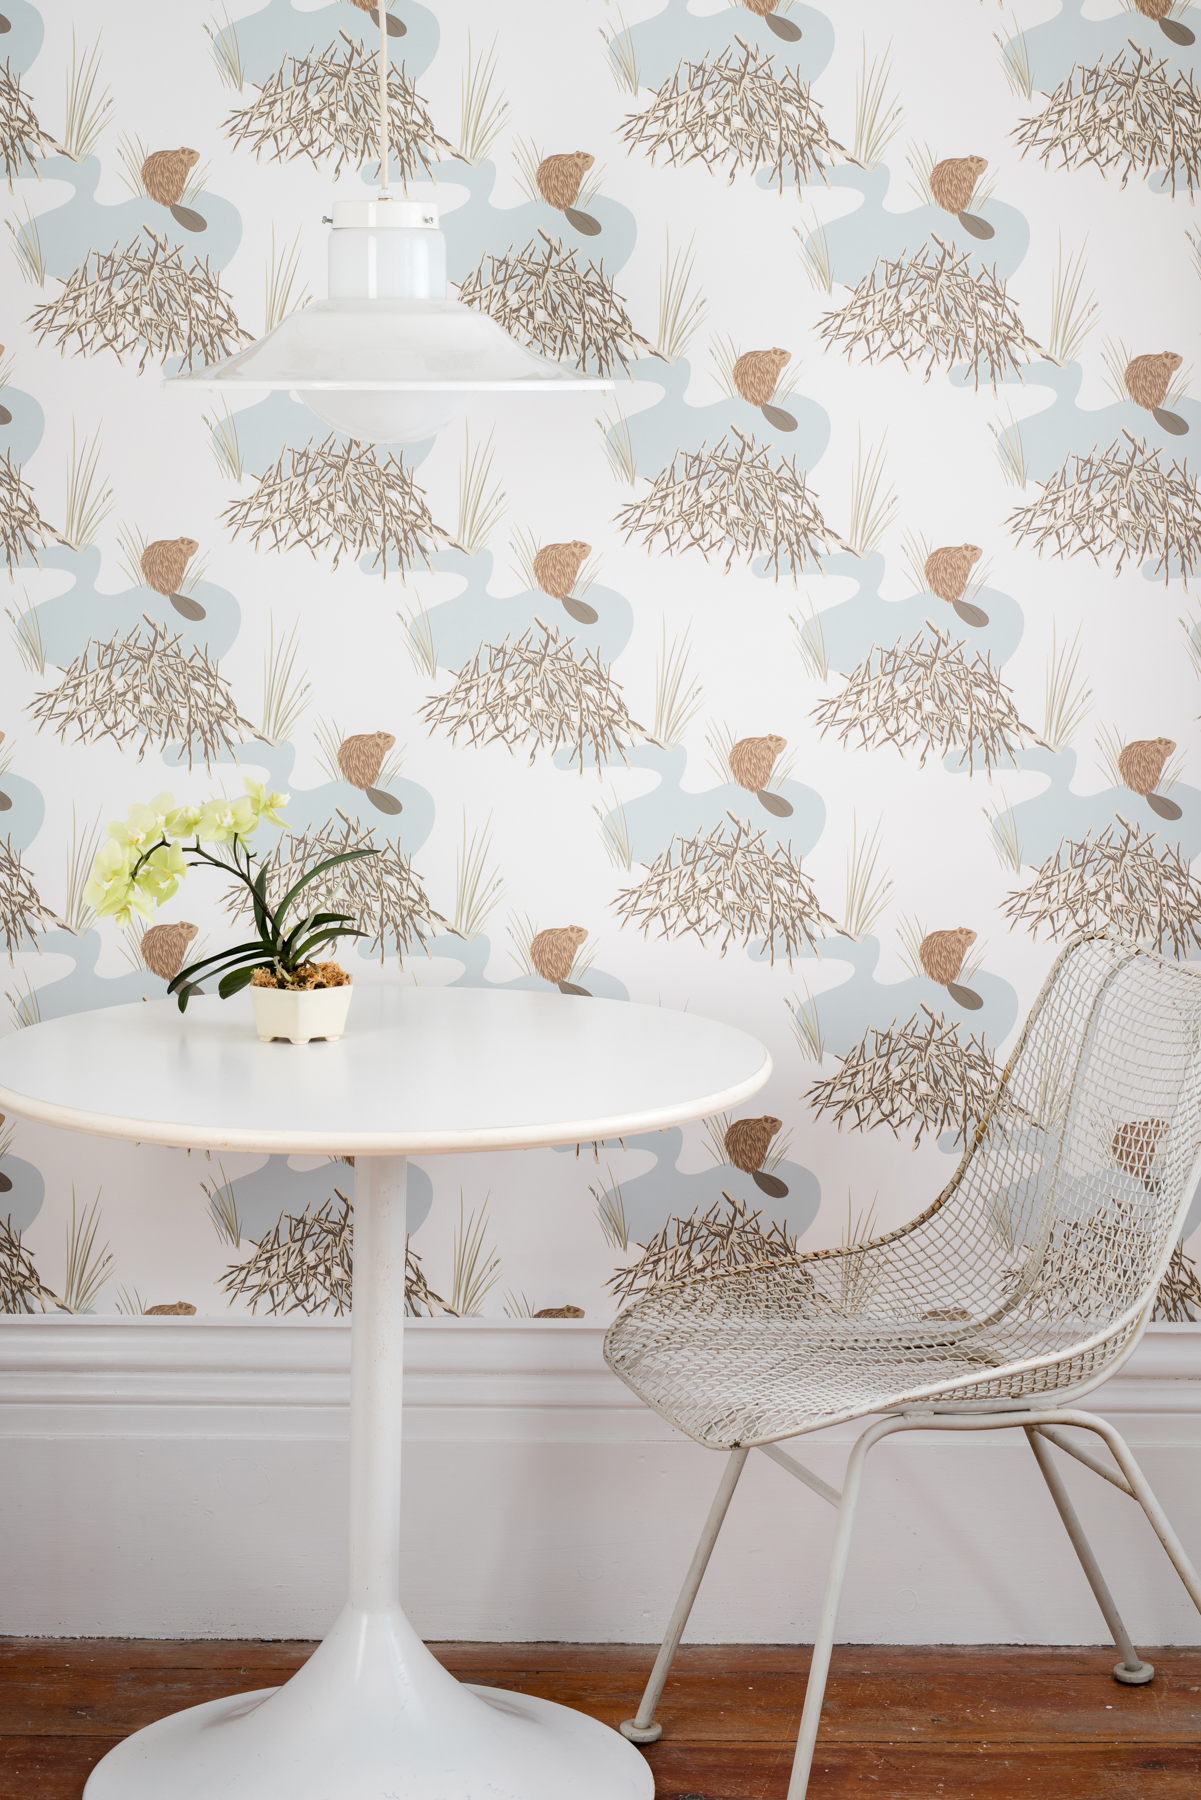 Kate Golding Beaver Dam wallpaper // Modern wallcoverings and interior decor.